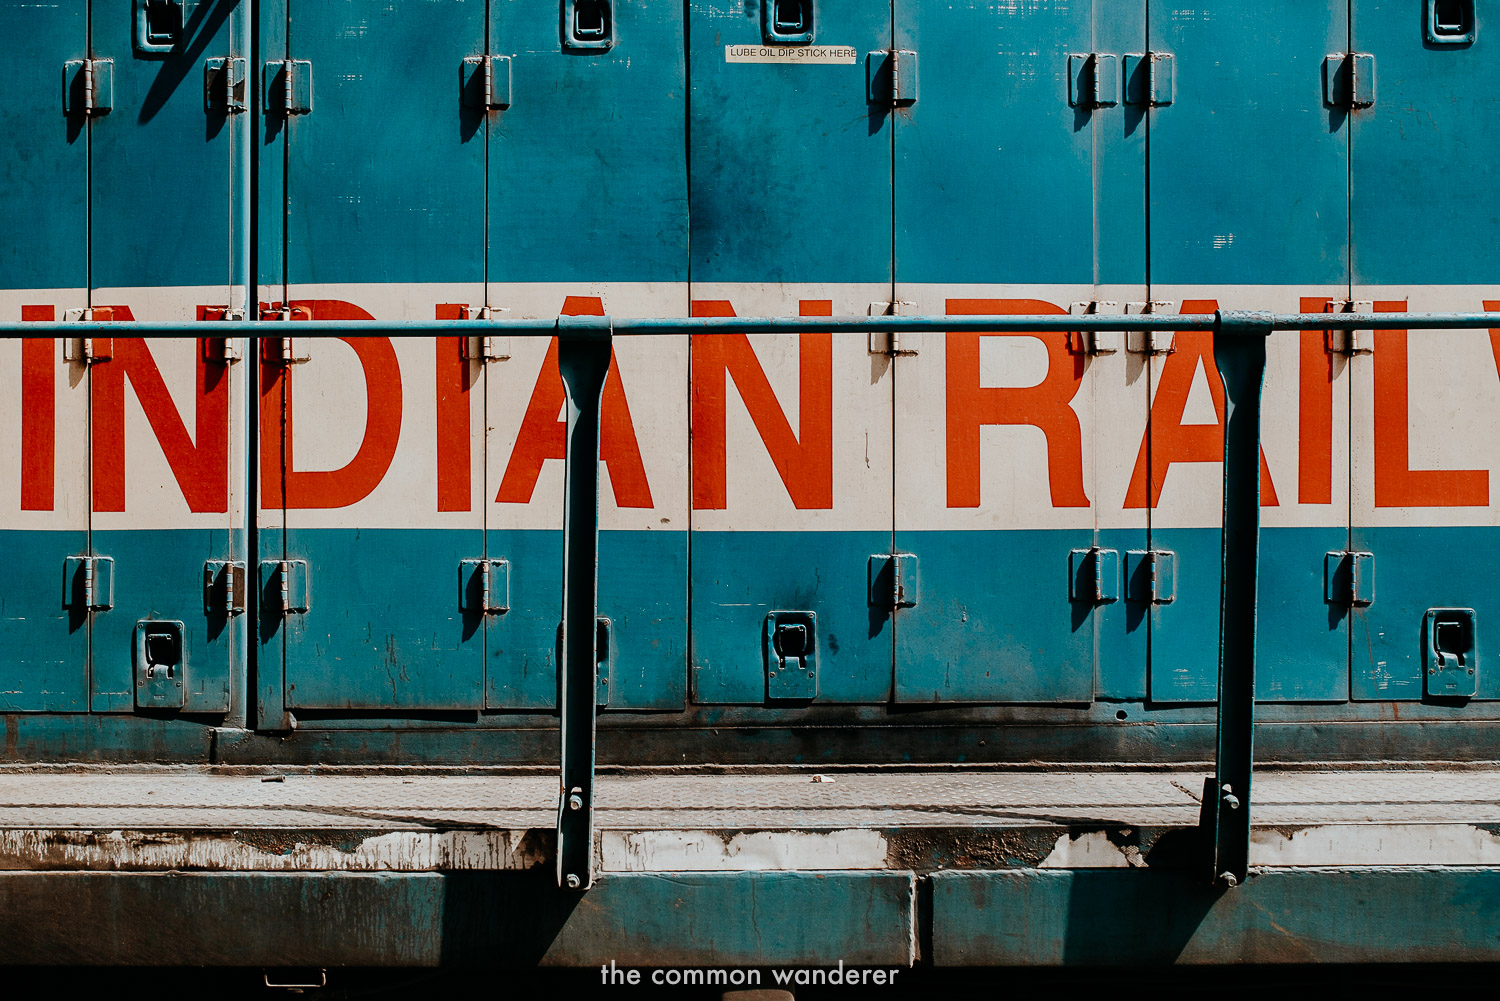 The_Common_Wanderer_exploring_india_by_train-3.jpg